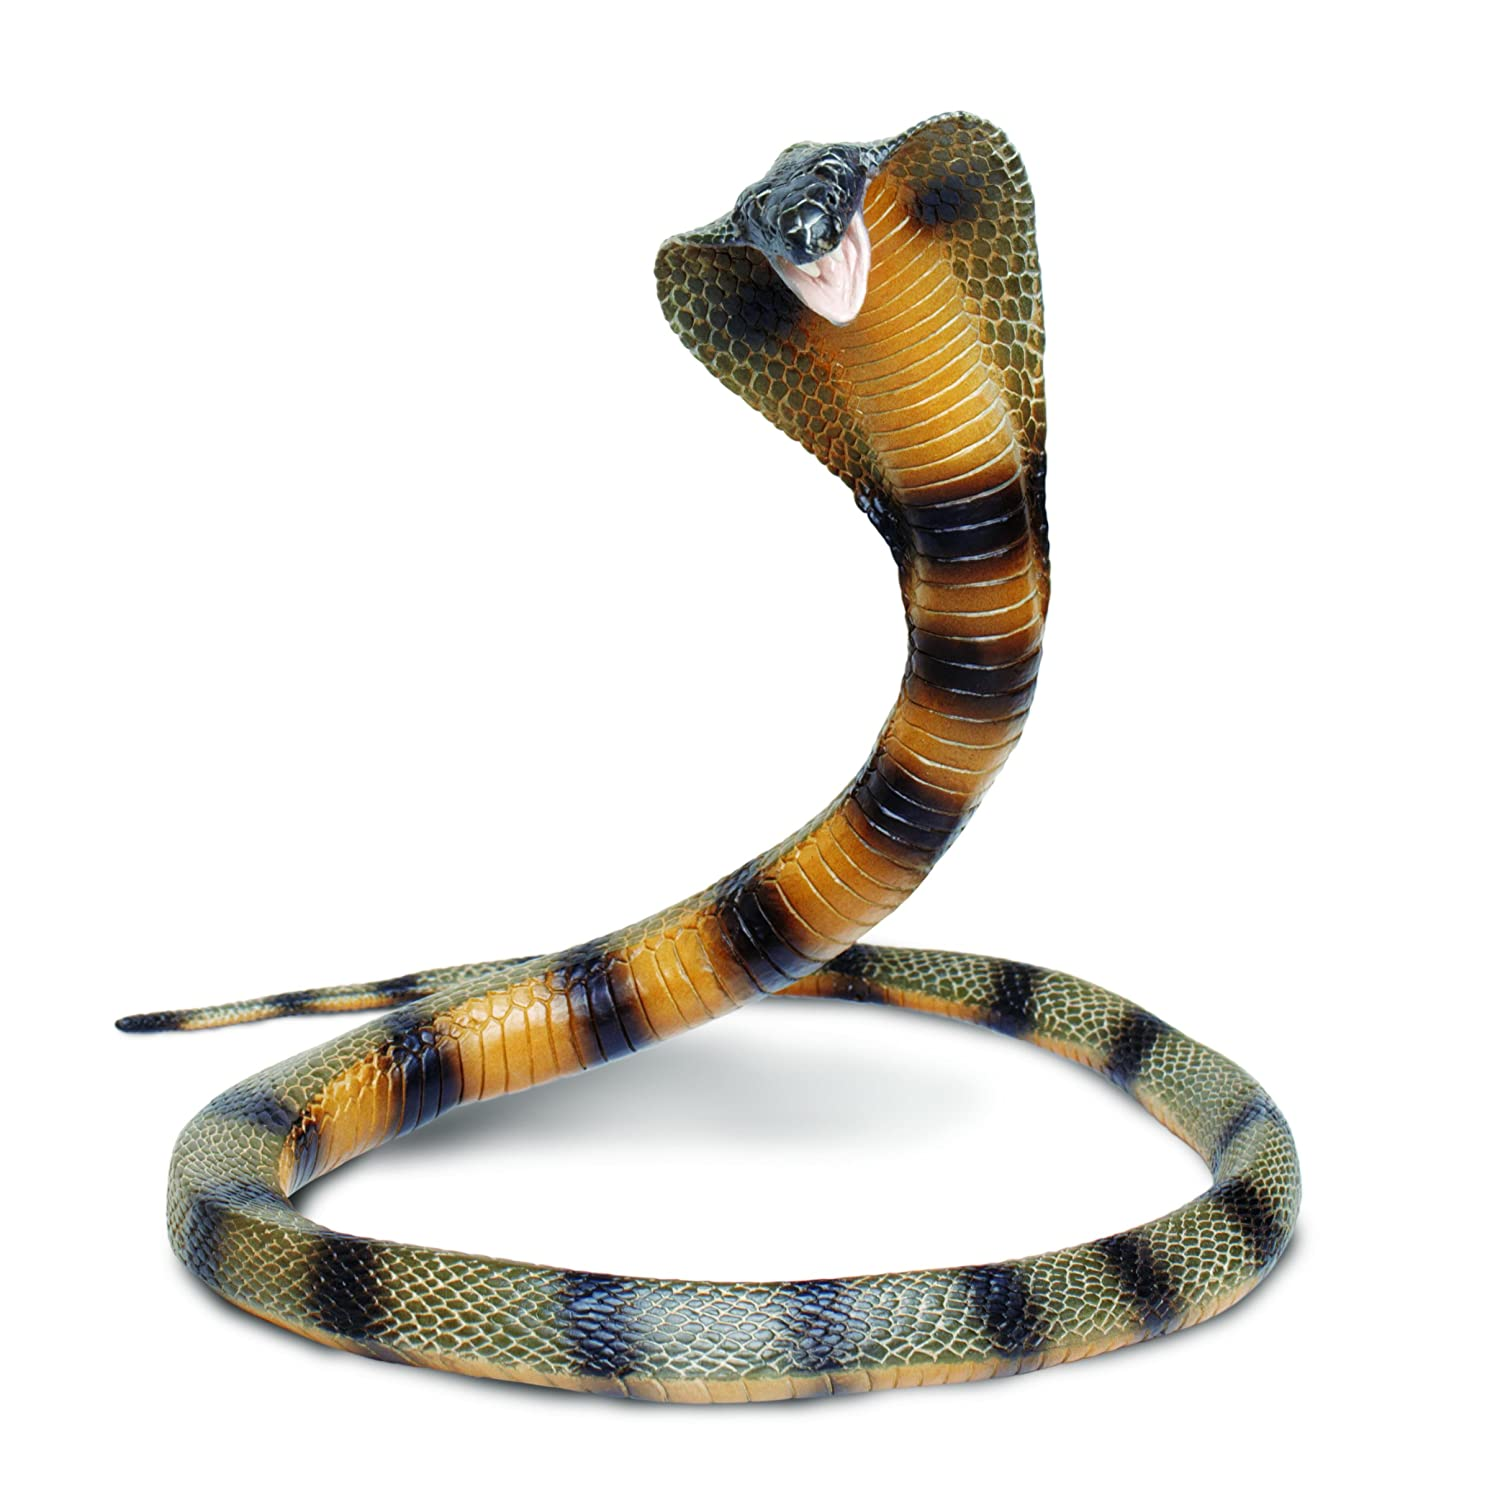 Plastoy - 2603-29 - Figurine - Animal - Cobra 260329 B000H6AX2W